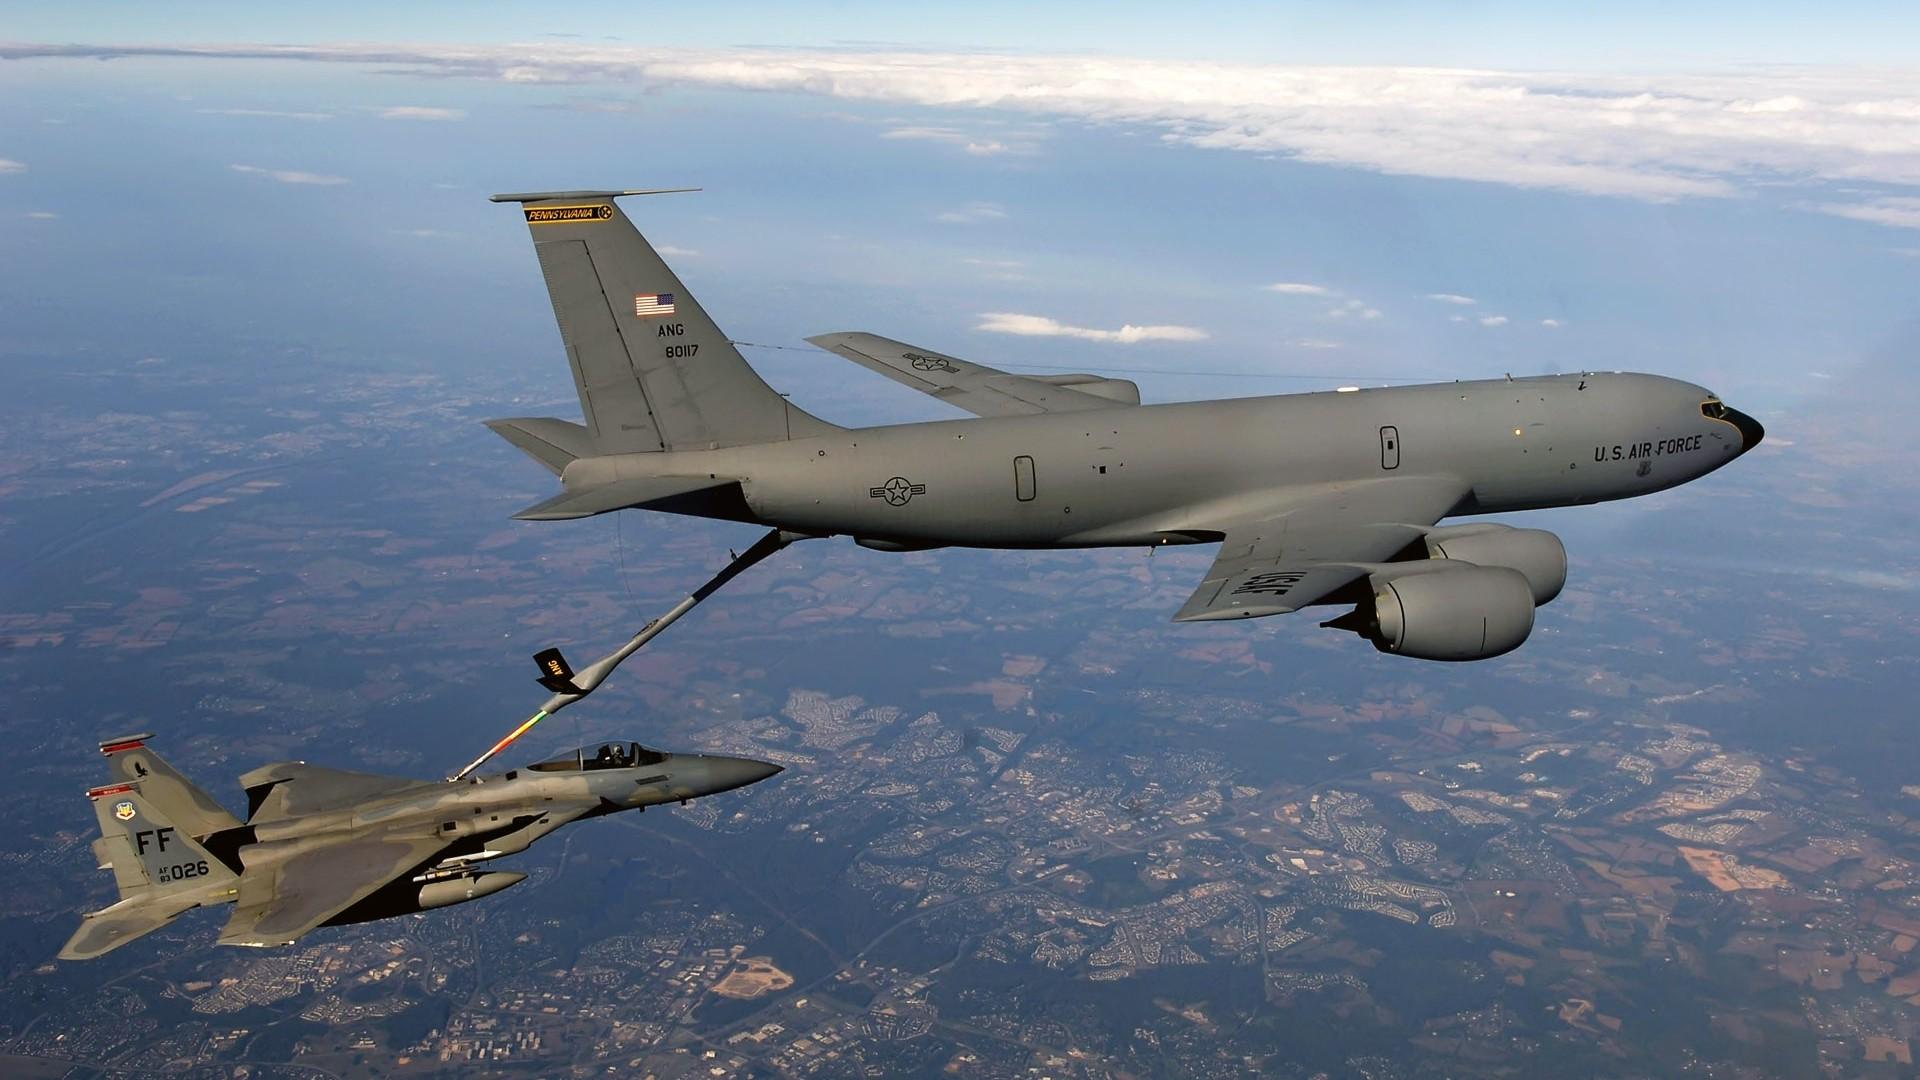 jets airplane boeing kc-135 stratotanker f15 eagle aircraft military aircraft military